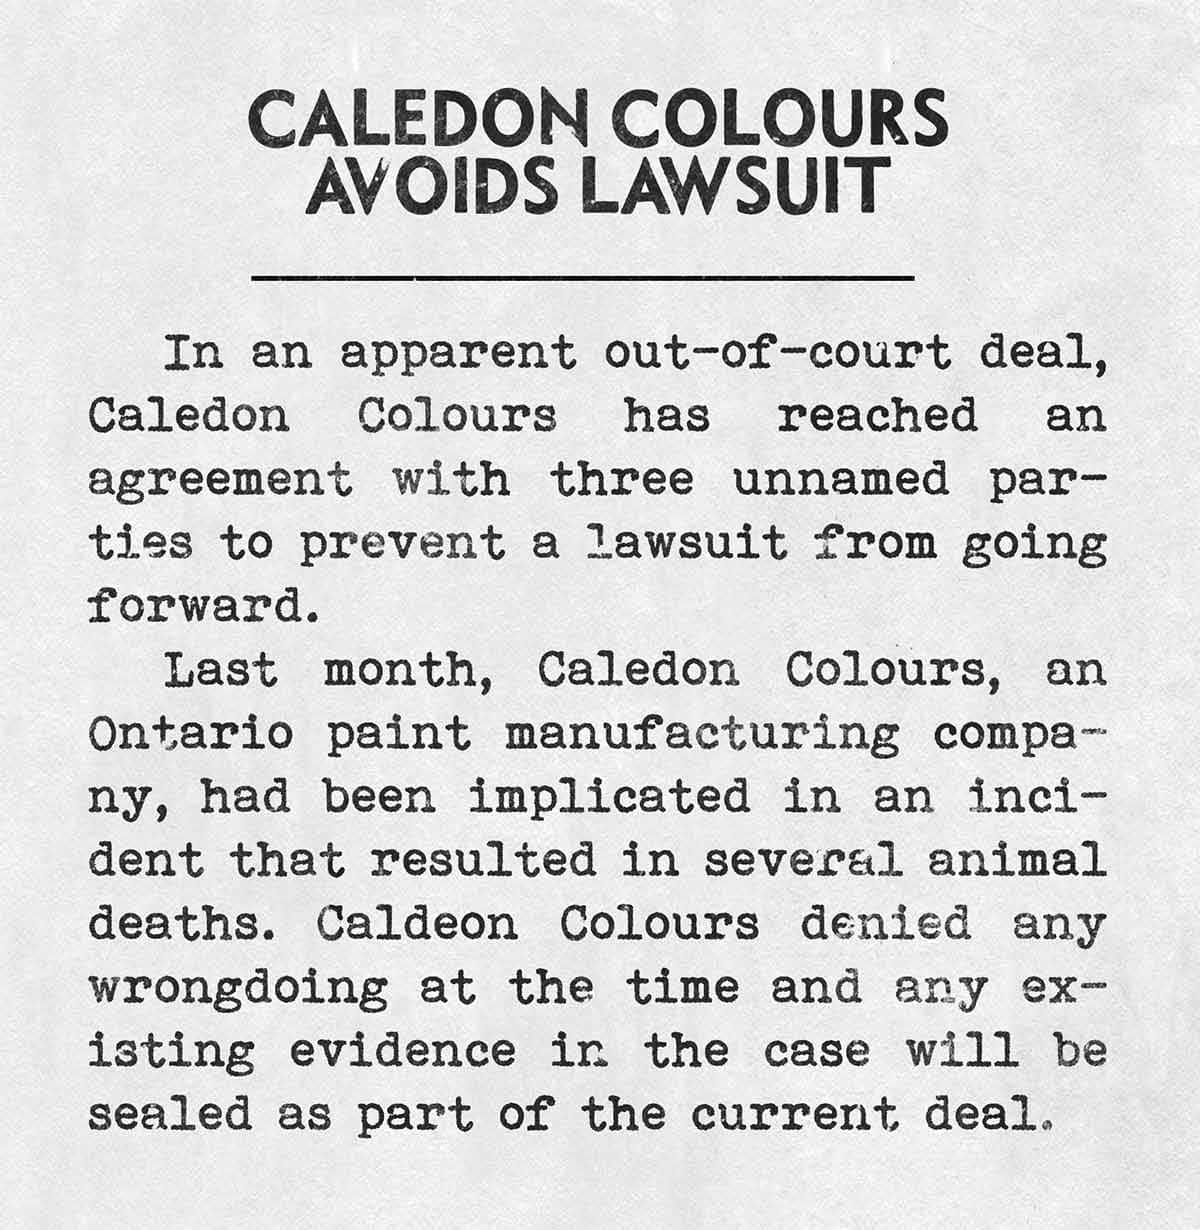 CALEDON COLOURS AVOIDS LAWSUIT In an apparent out-of-court deal, Caledon Colours has reached an agreement with three unnamed parties to prevent a lawsuit from going forward. Last month, Caledon Colours, an Ontario paint manufacturing company, had been implicated in an incident that resulted in several animal deaths. Caldeon Colours denied any wrongdoing at the time and any existing evidence in the case will be sealed as part of the current deal.